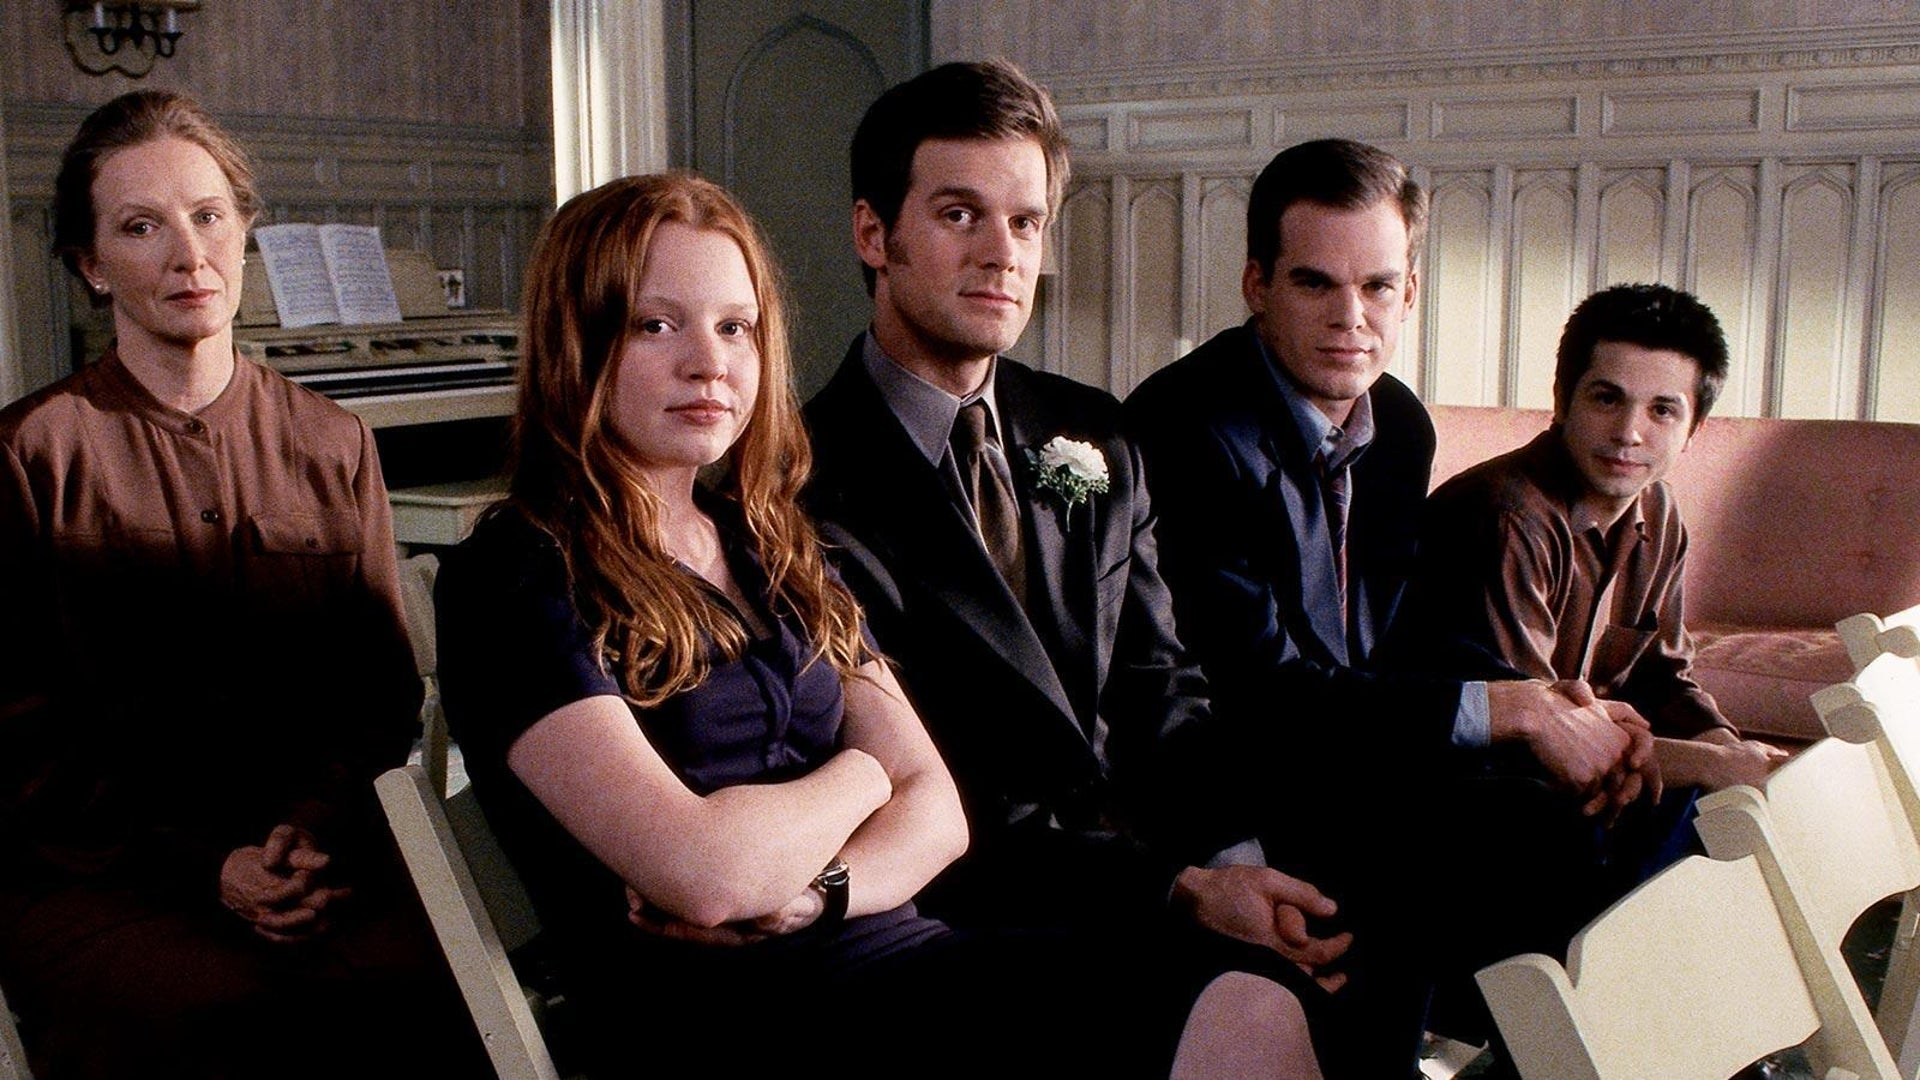 Frances Conroy, Lauren Ambrose, Peter Krause, Michael C. Hall, and Freddy Rodriguez, Six Feet Under